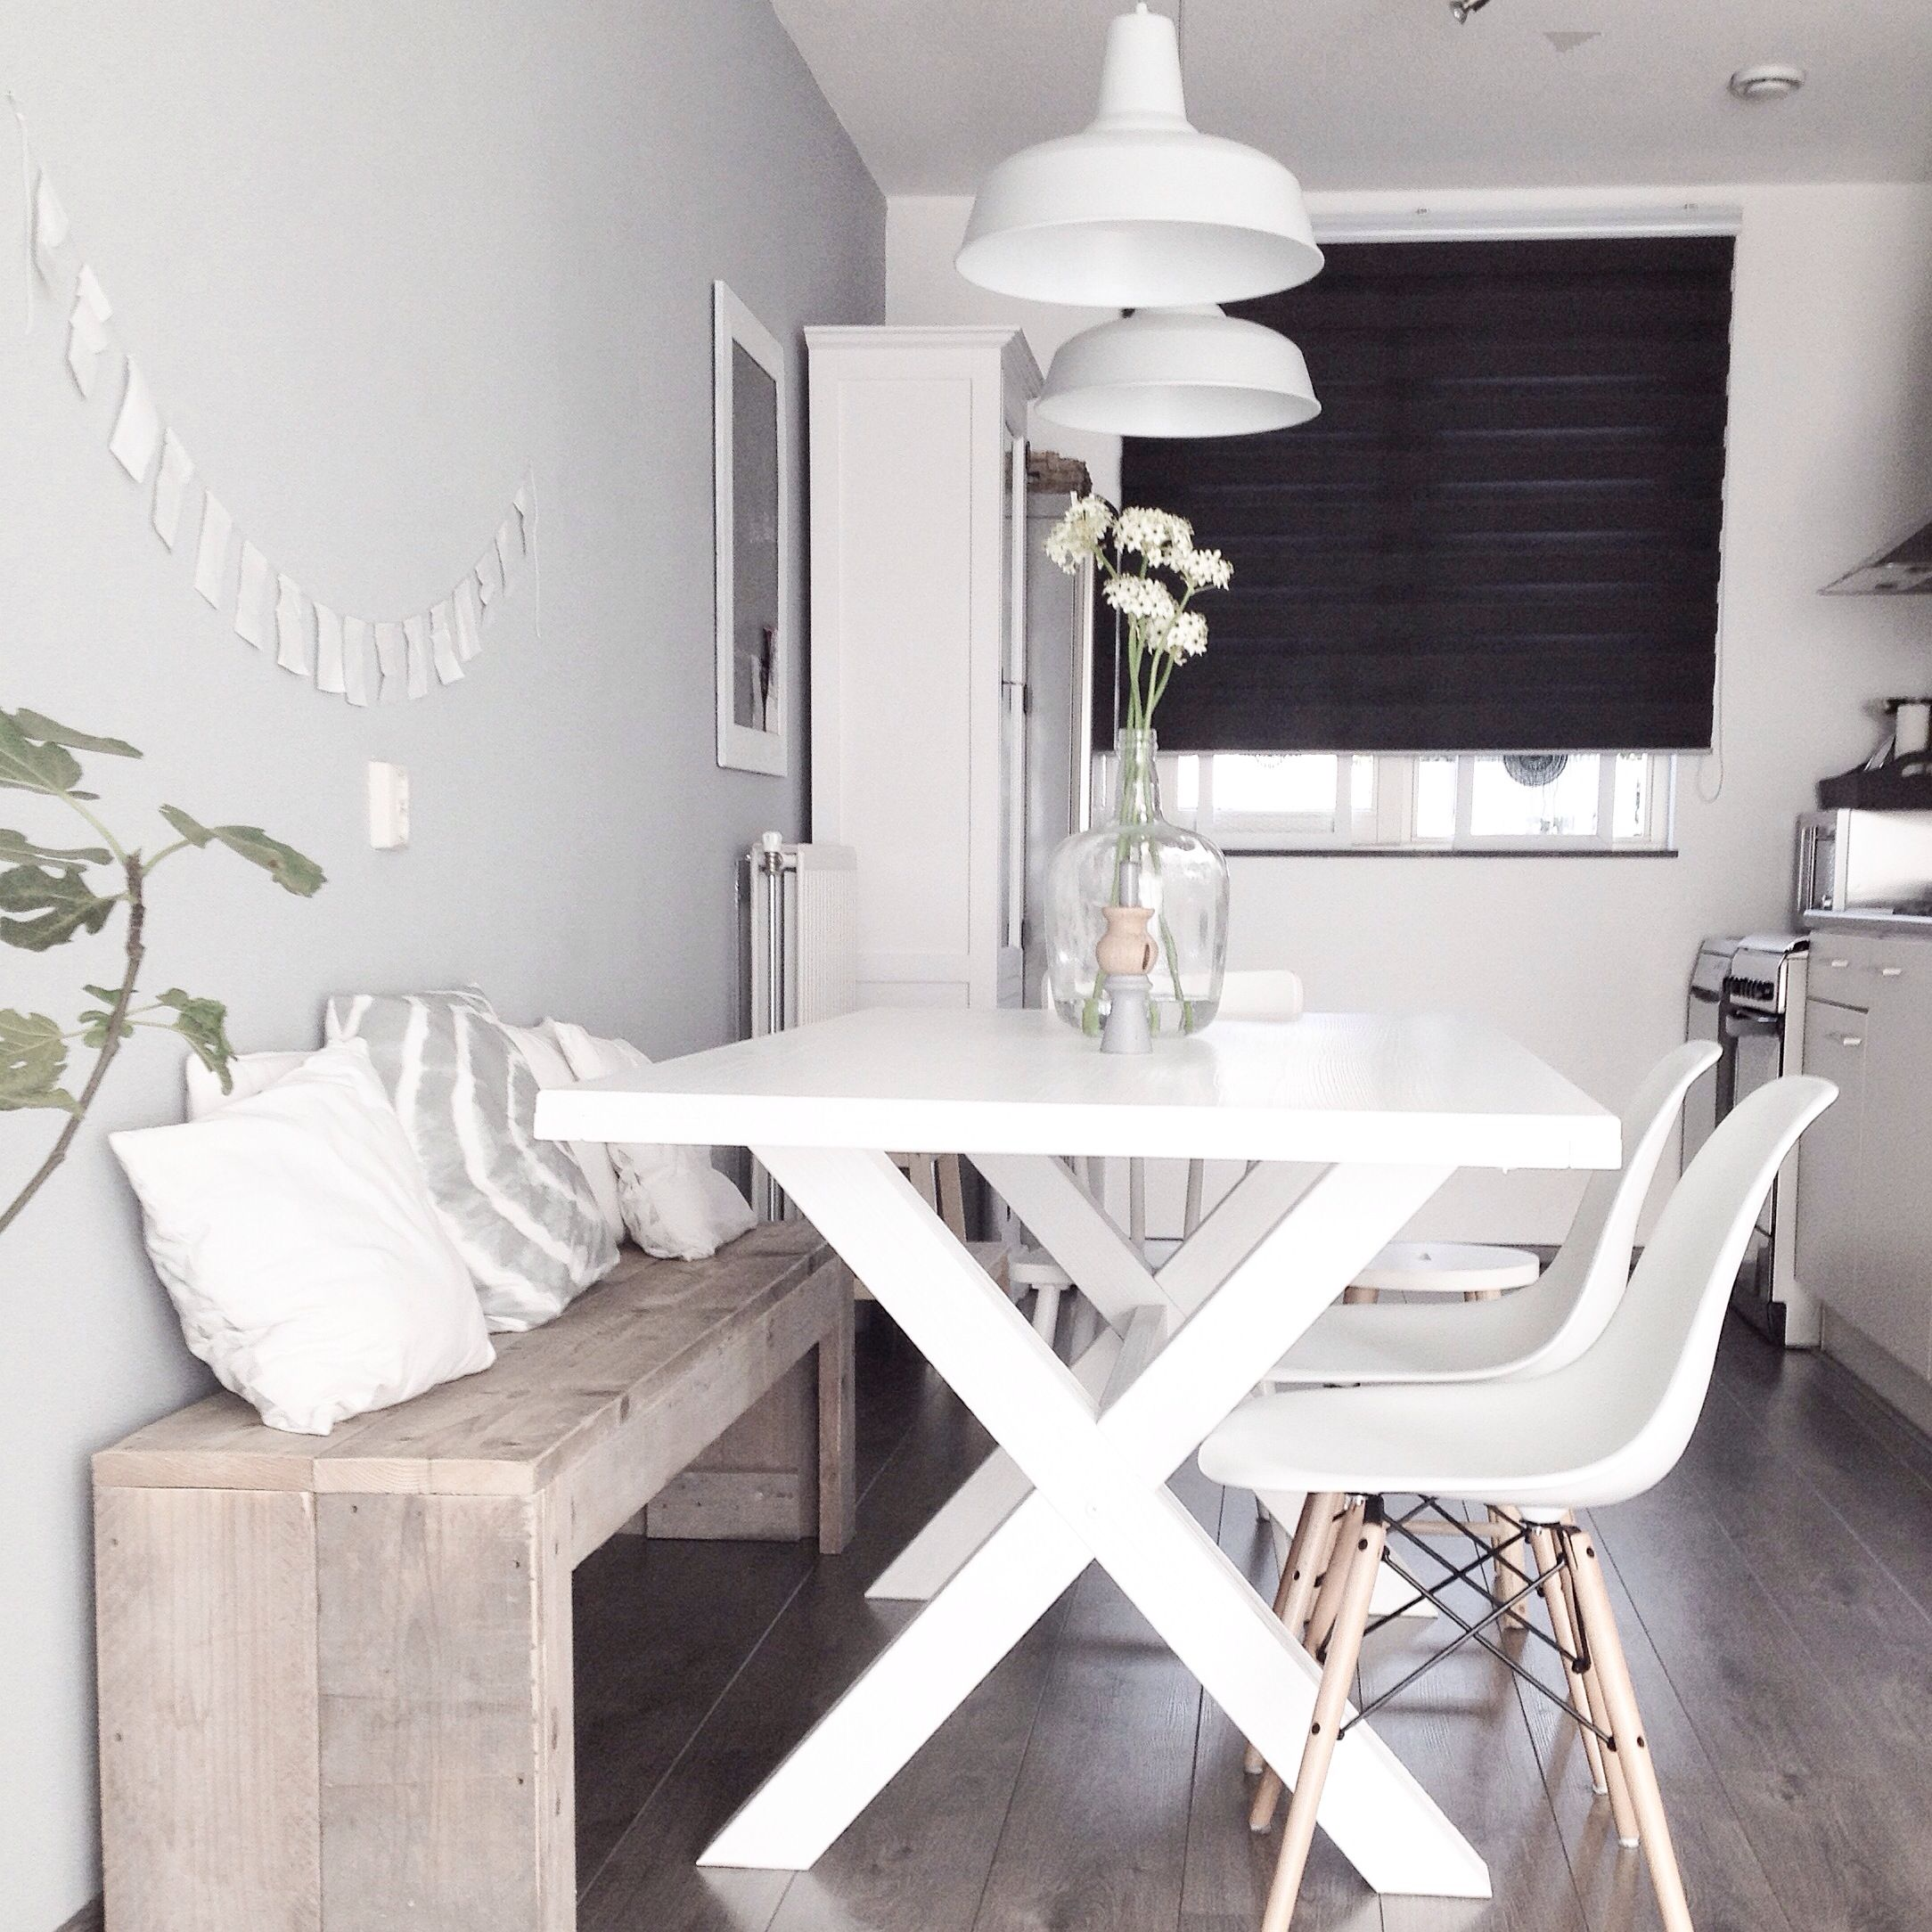 Kitchen table with bench seating and chairs  DIY Wood pallet bench kitchen nordic dining white Eames chair DSW